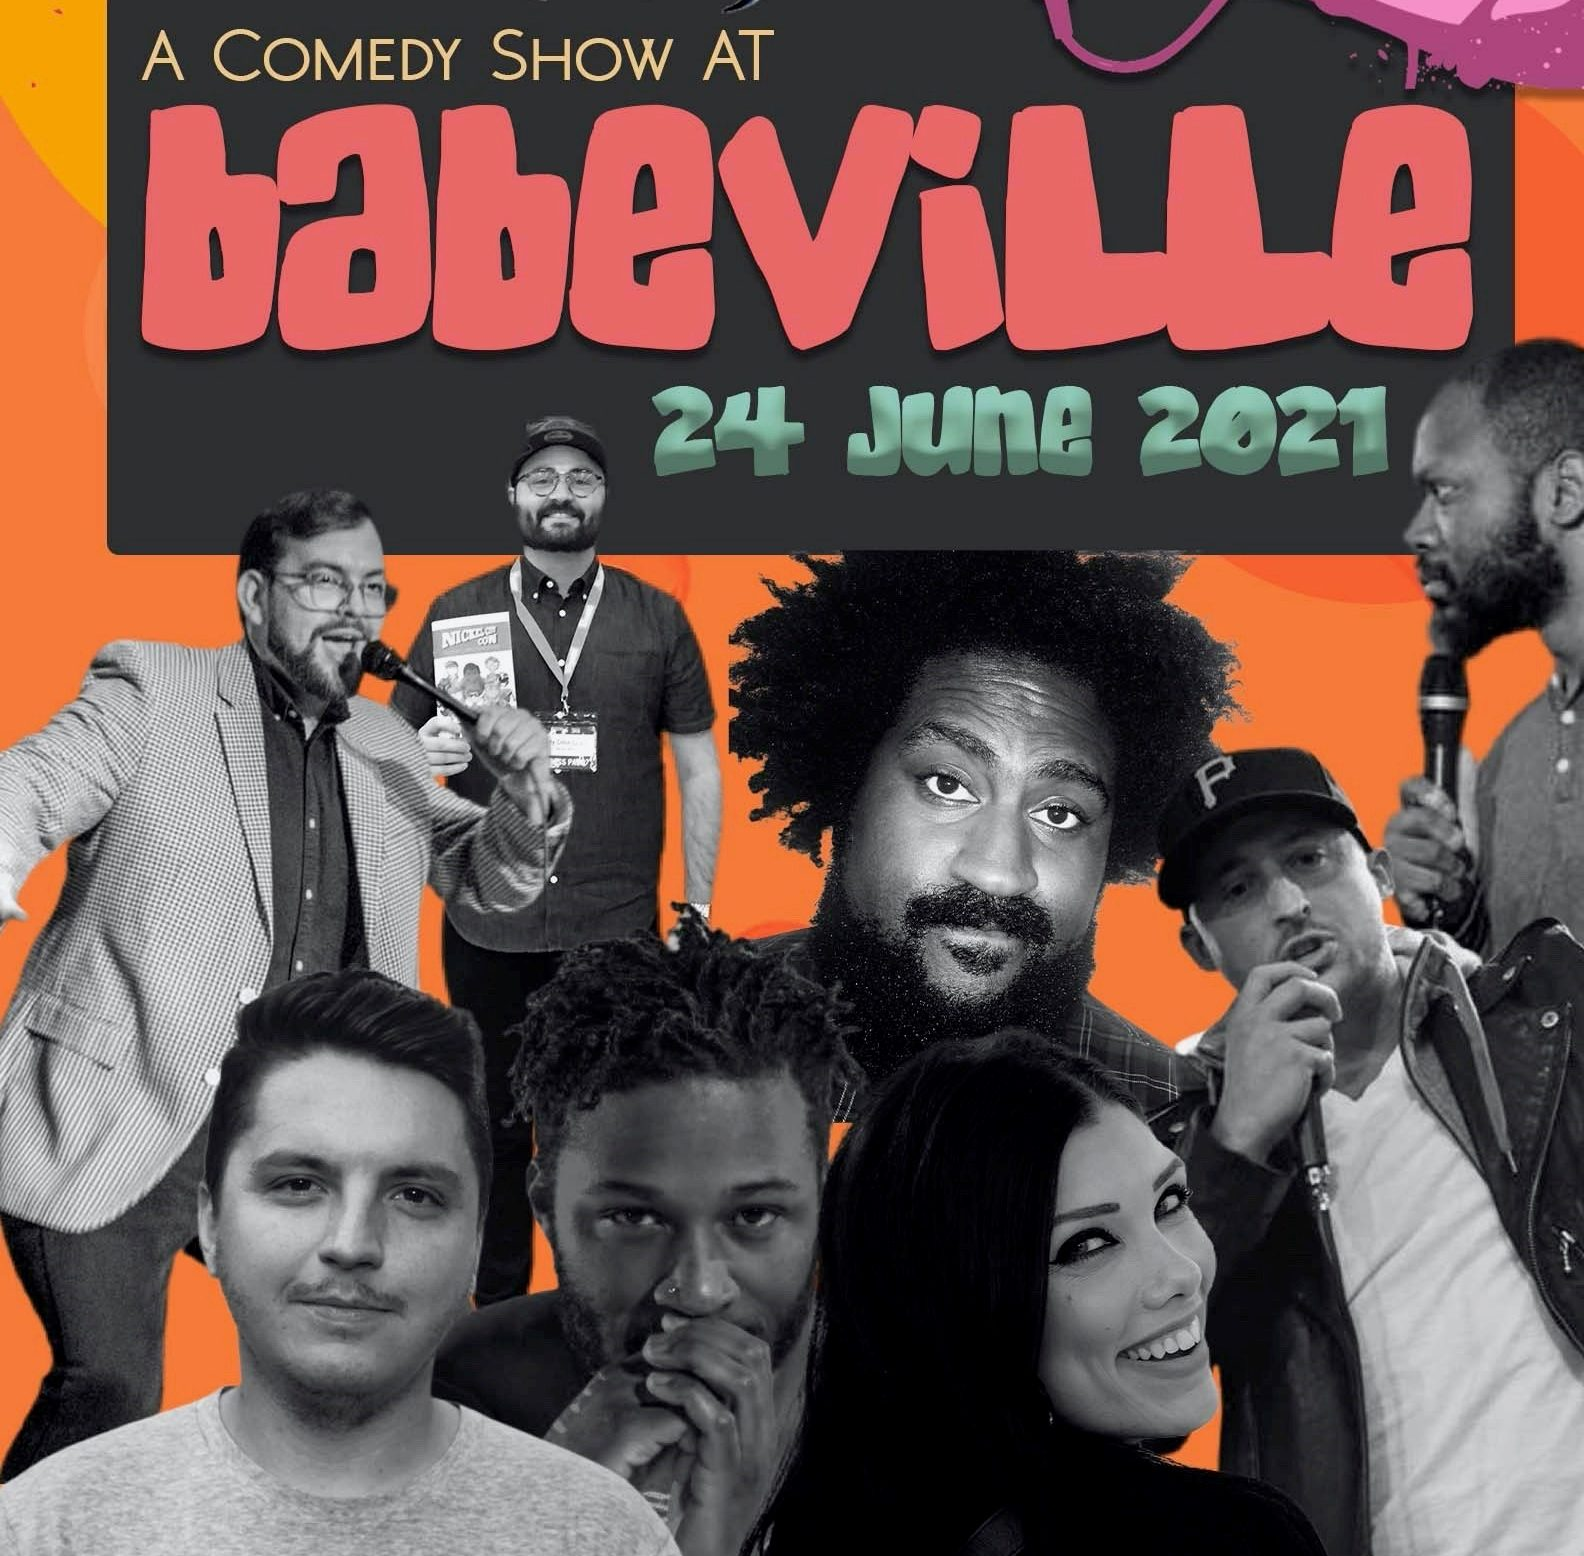 Comedy Show at Babeville